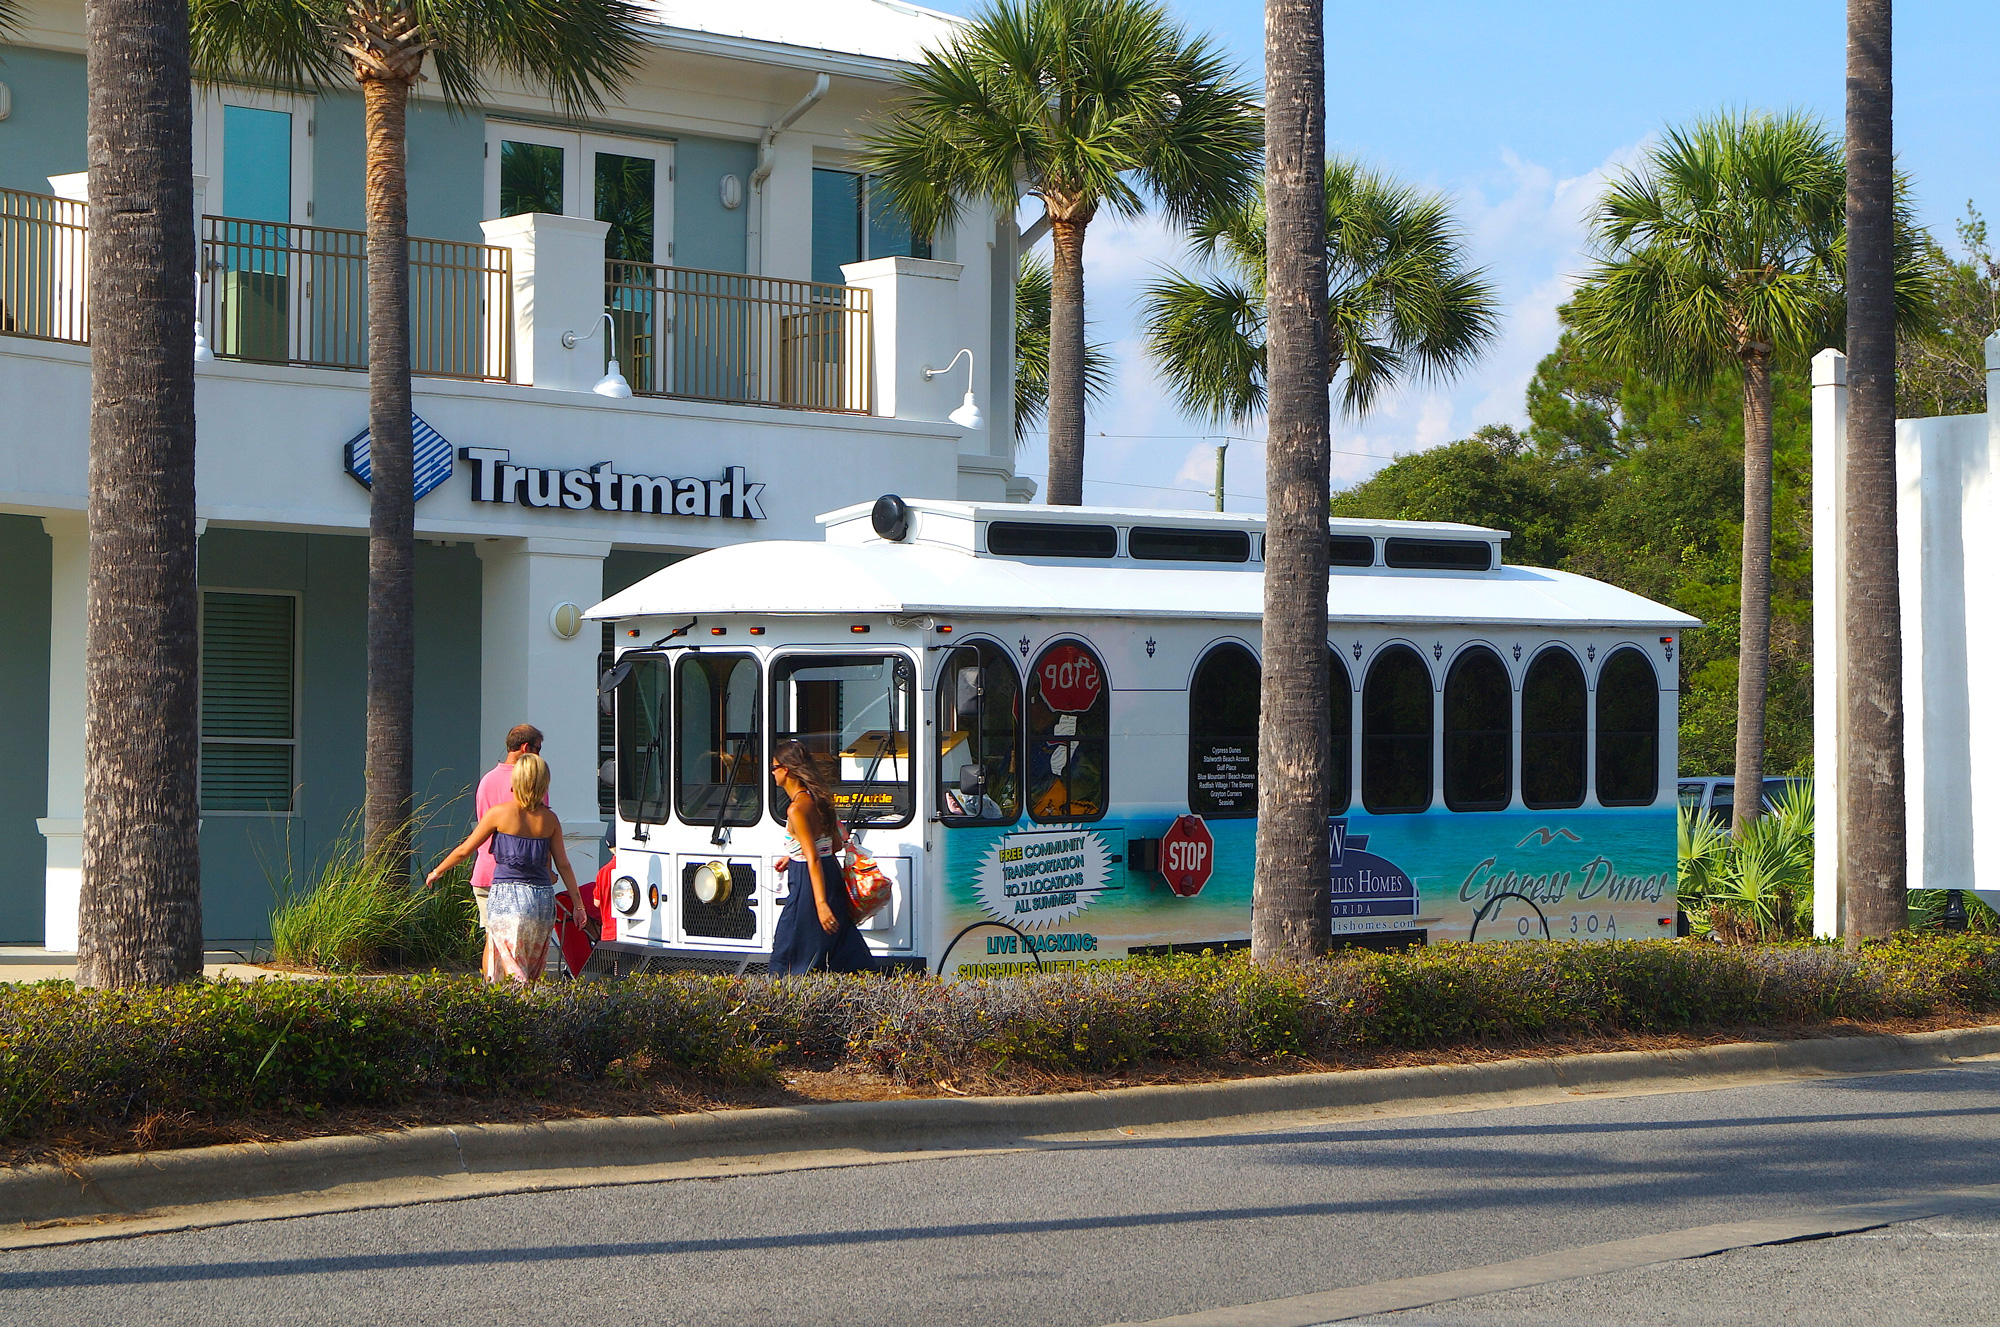 Ride the Turtle Express - 30A Trolley   Providing free transportation along Florida's scenic Highway 30A between Dune Allen and Seaside.